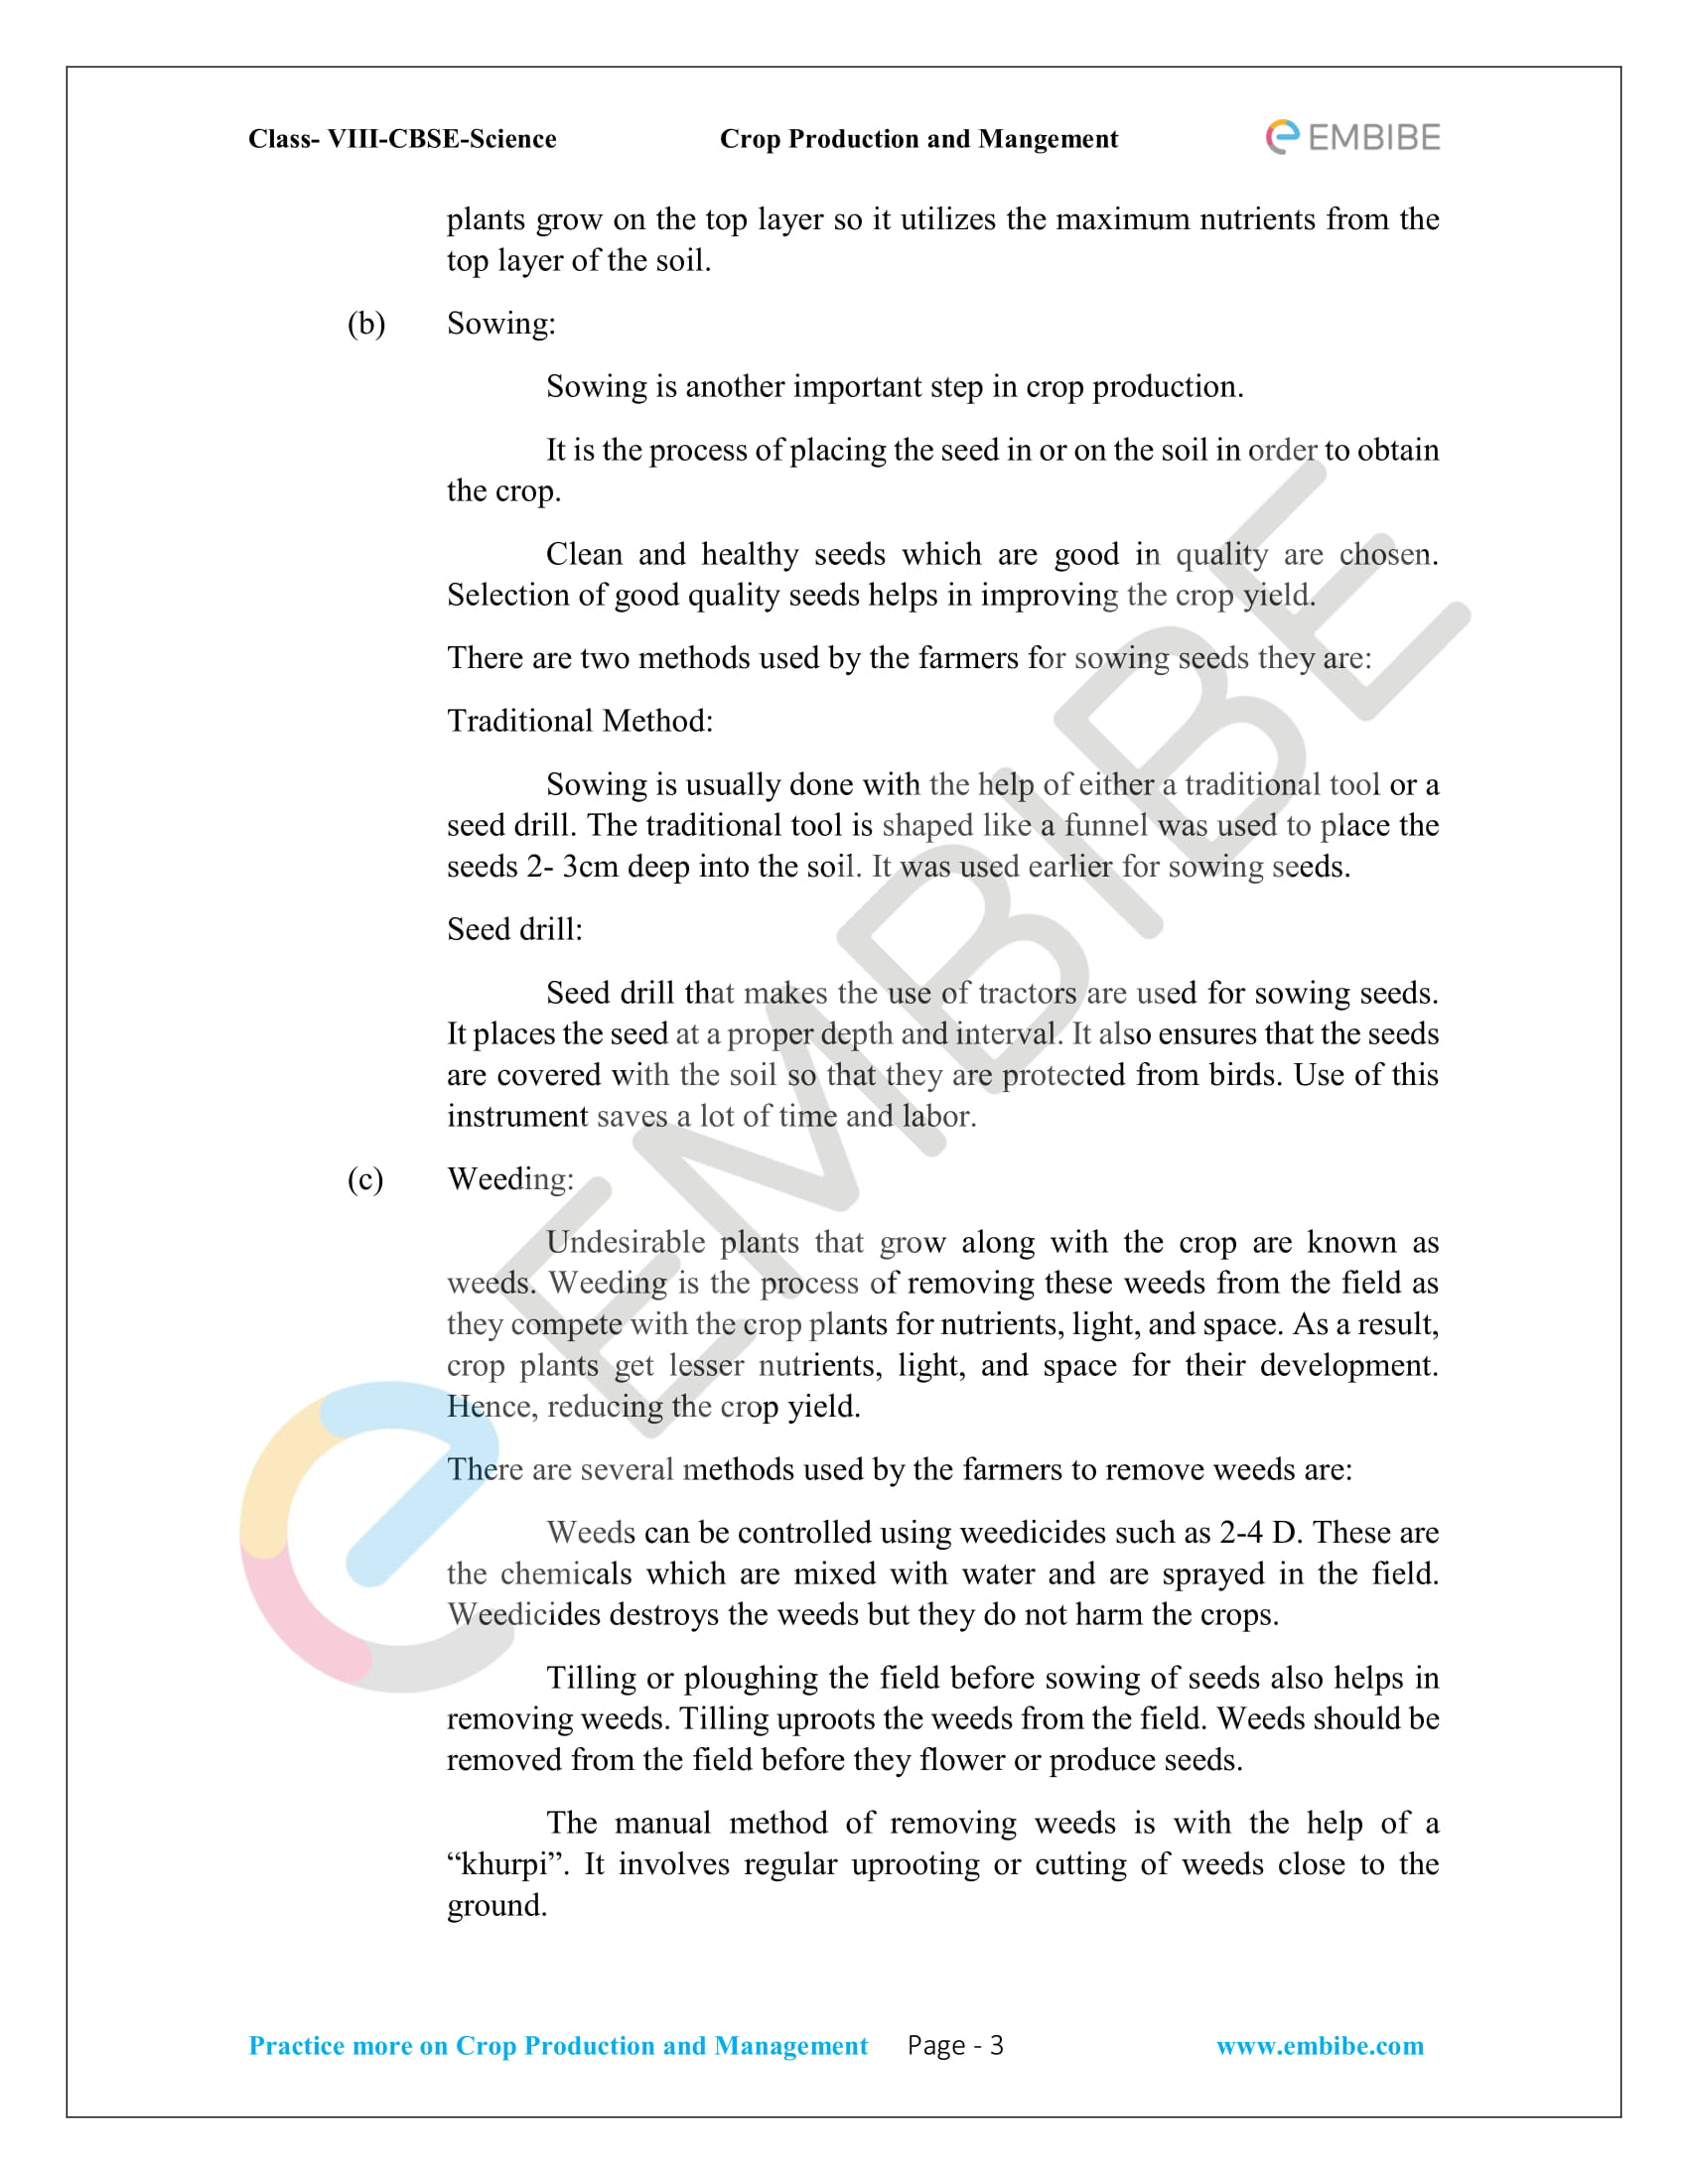 NCERT Solutions For Class 8 Science Chapter 1: Crop